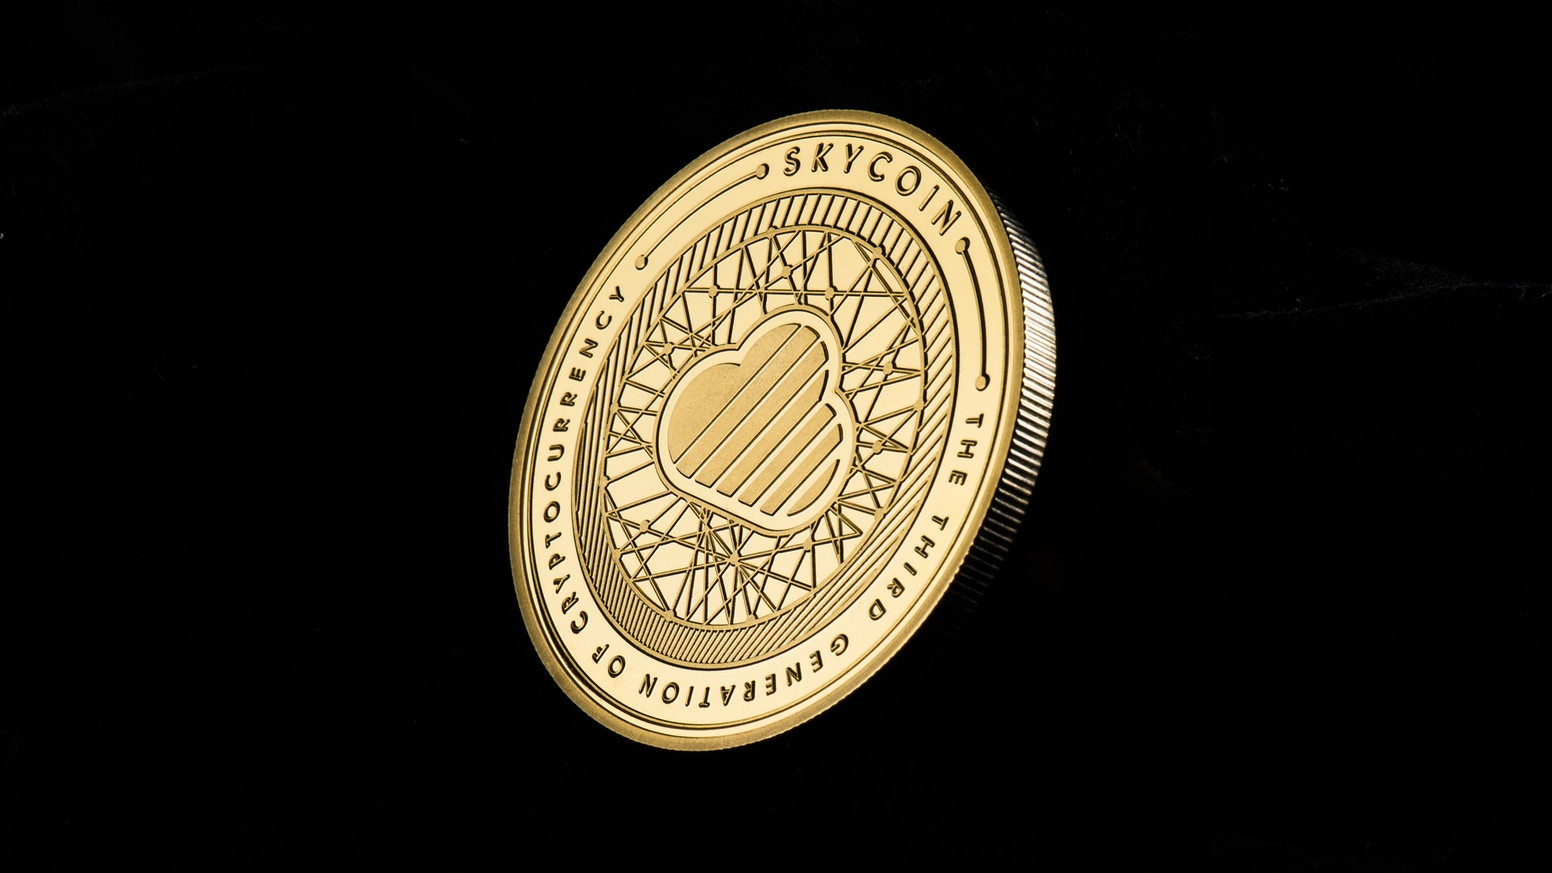 The first Skycoin Collectable Coin backed by the Skycoin development team for the Skycoin believers community.                  This project was successfully funded over the course of 30 days!